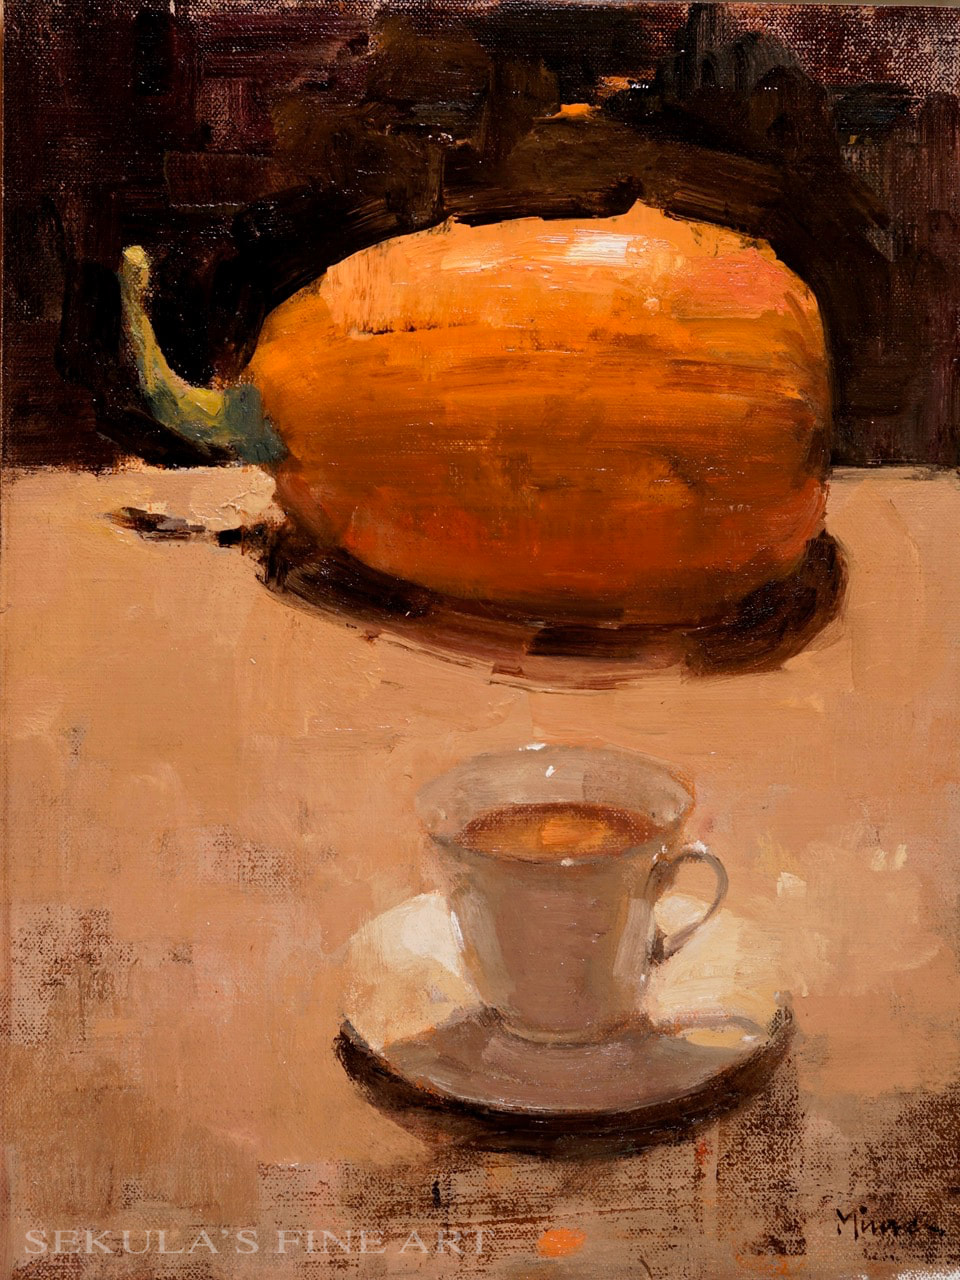 ​Pumpkin Spice Tea, 16 x 12, oil on linen by Terry Miura